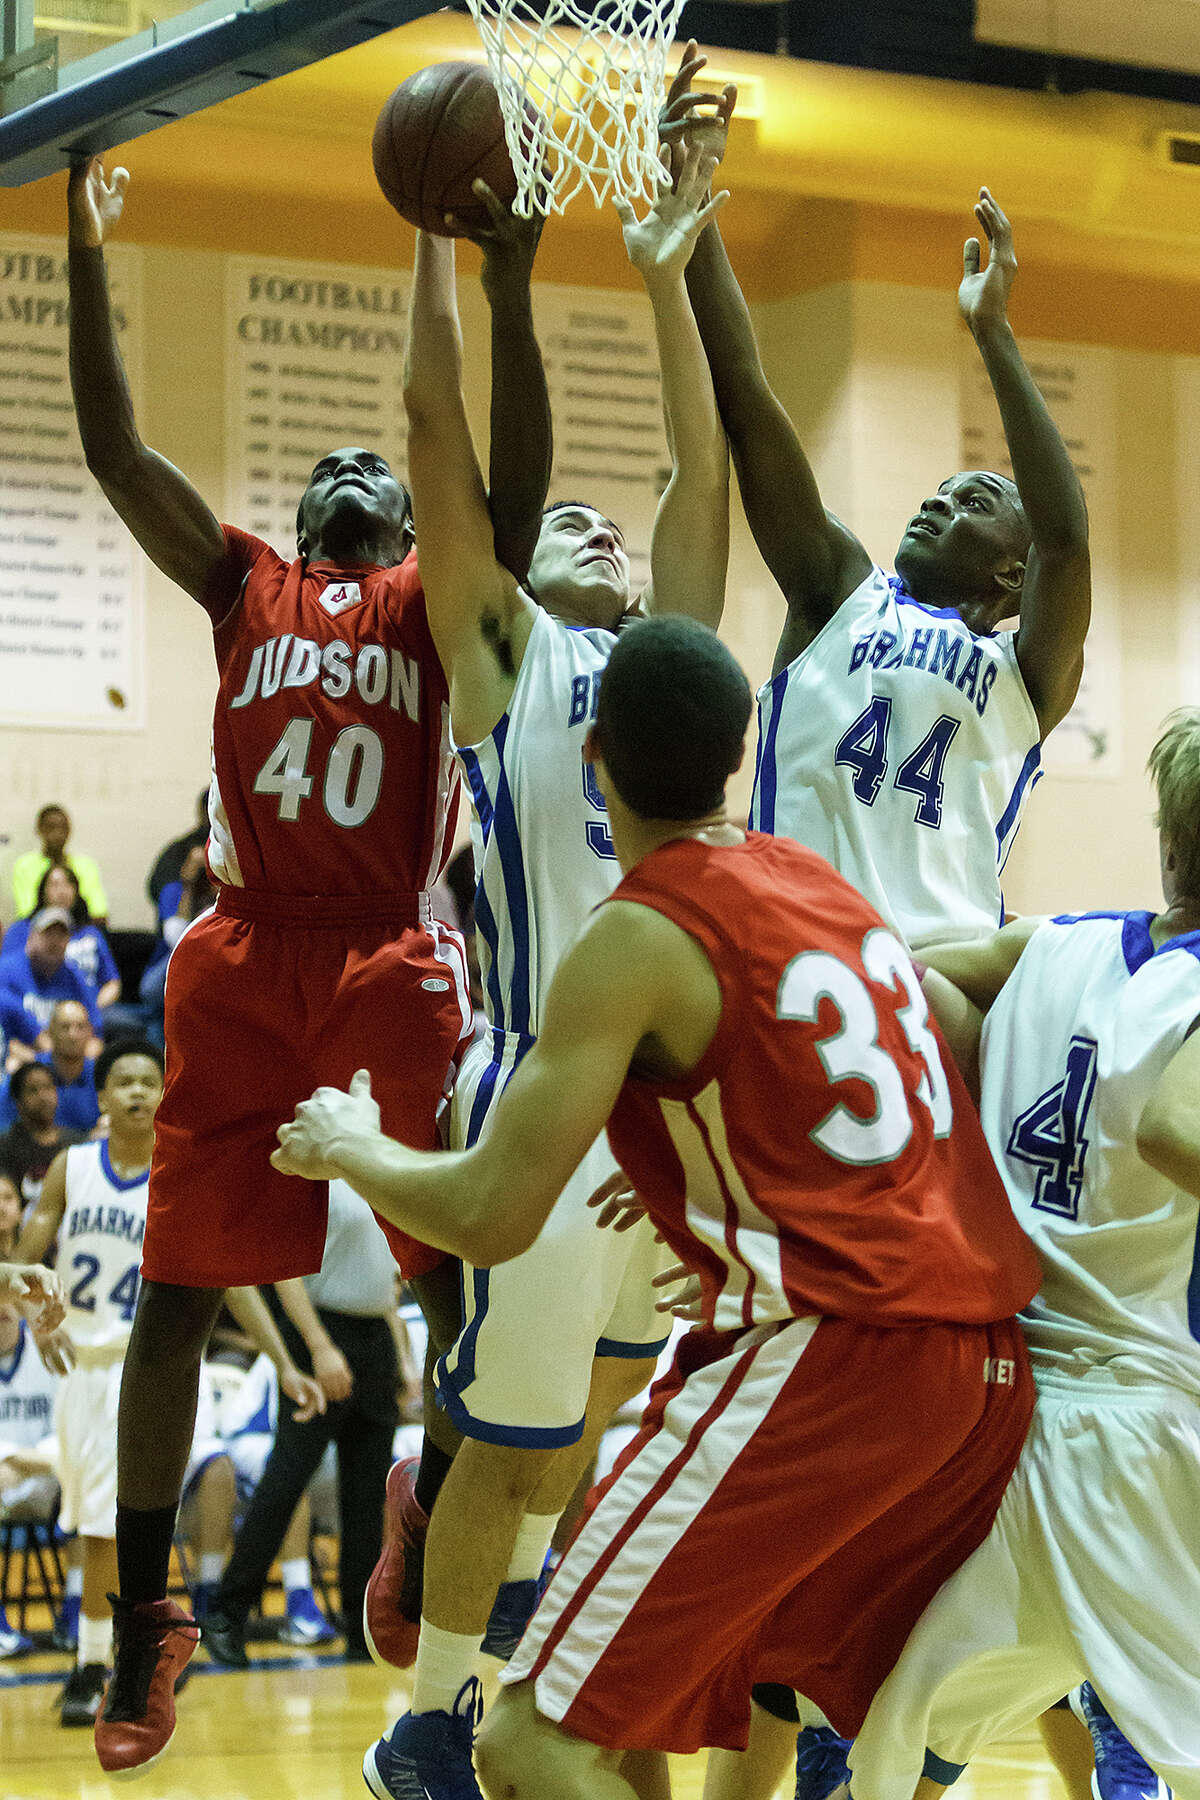 Judson's Derrik Lustger (from left) goes up for a rebound with MacArthur's Nick Garcia and Marco McKee during the first half of their Class 5A bidistrict game at Clemens High School on Monday, Feb. 18, 2013. Judson won the game 49-45.